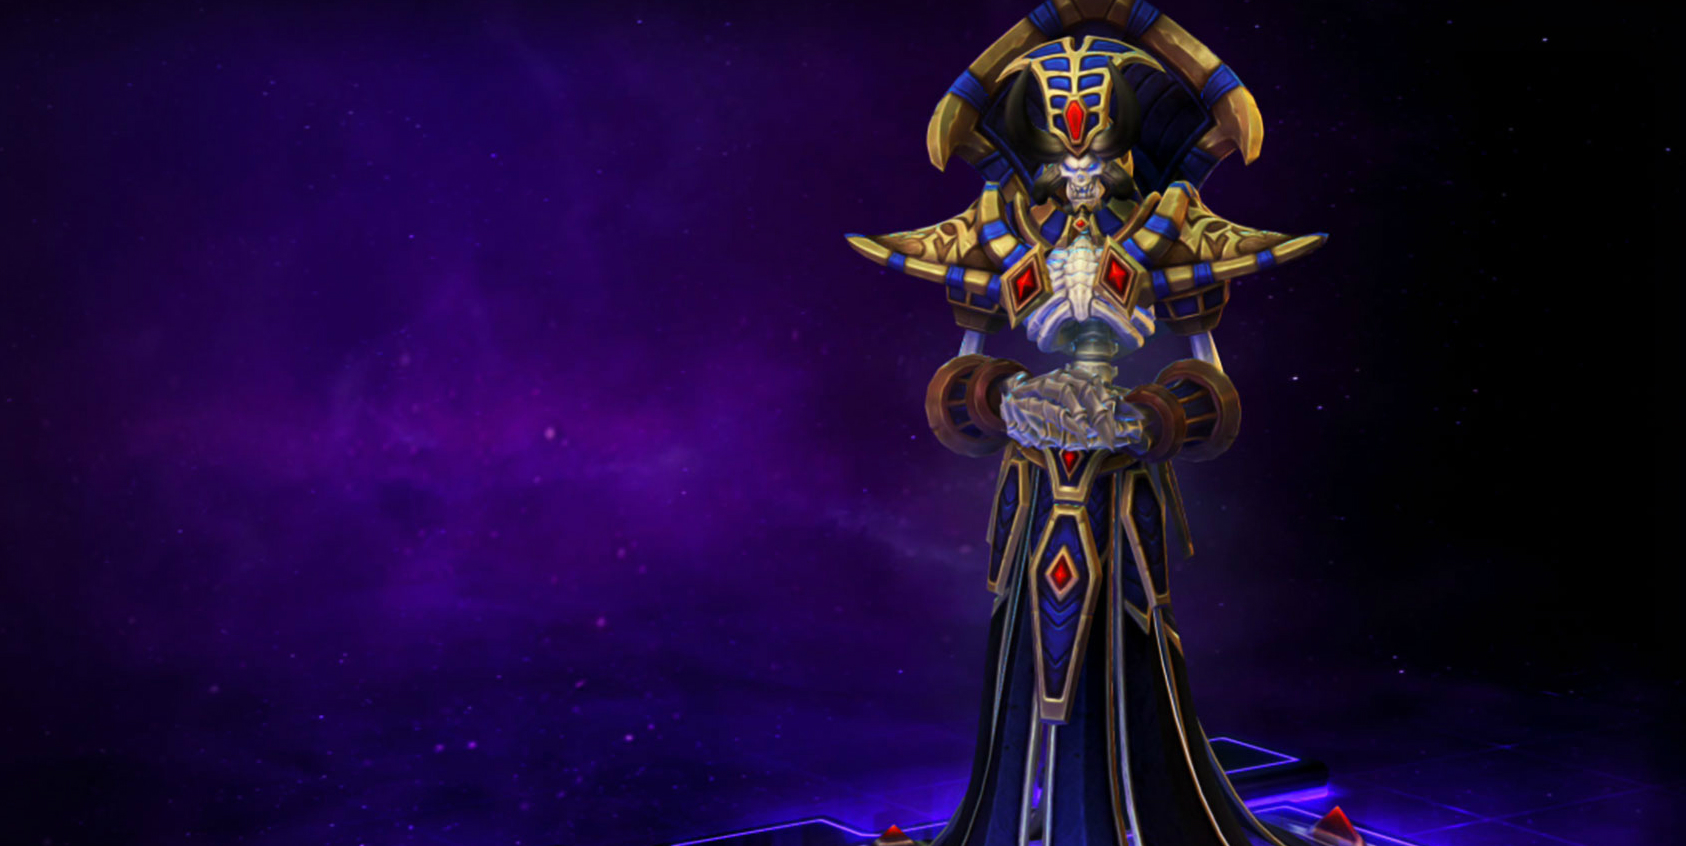 Kel'Thuzad was worth the wait for his Heroes of the Storm debut screenshot